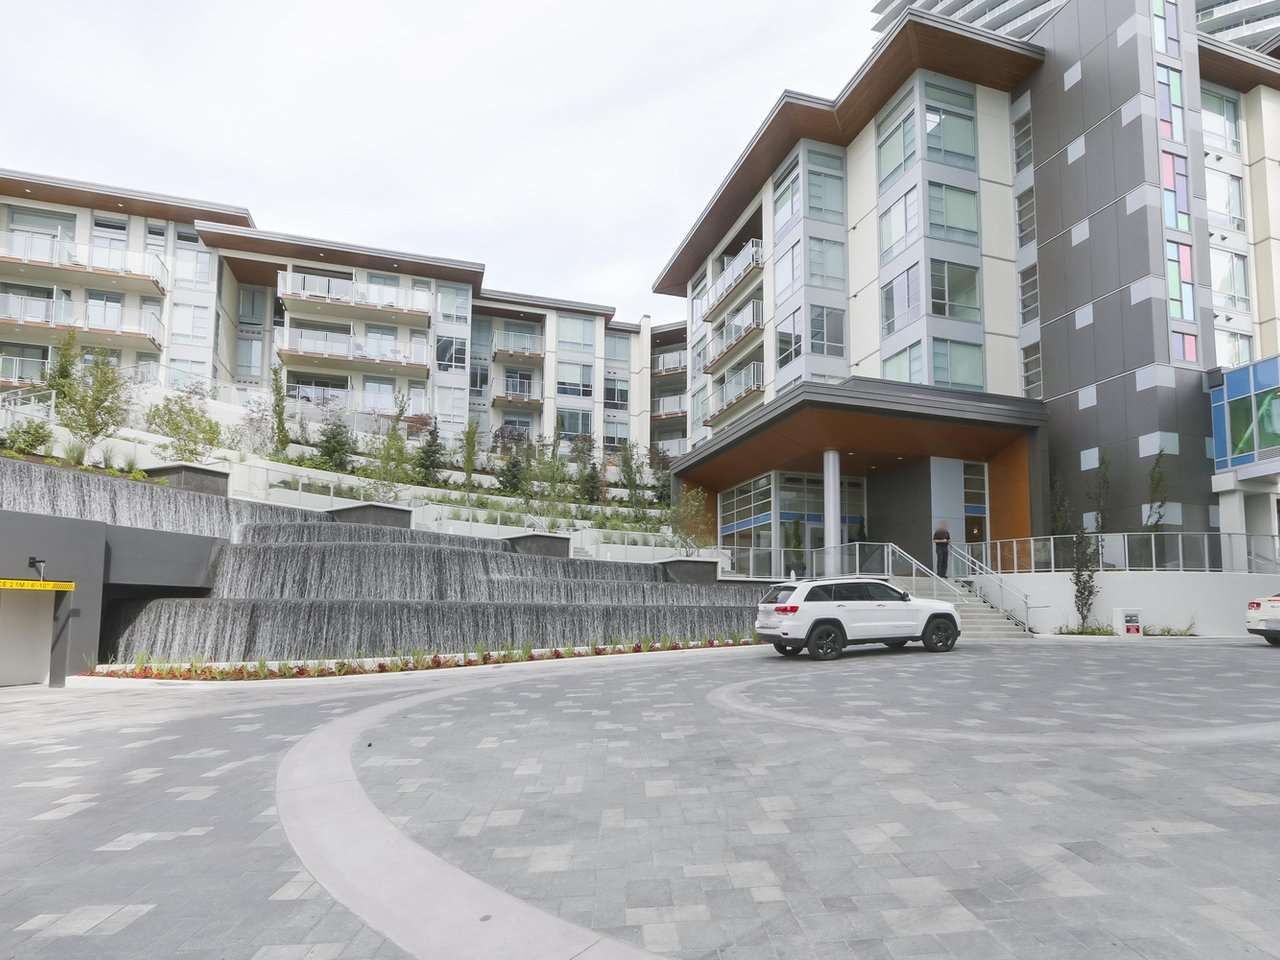 """Main Photo: 104 1768 GILMORE Avenue in Burnaby: Brentwood Park Condo for sale in """"Escala"""" (Burnaby North)  : MLS®# R2398729"""